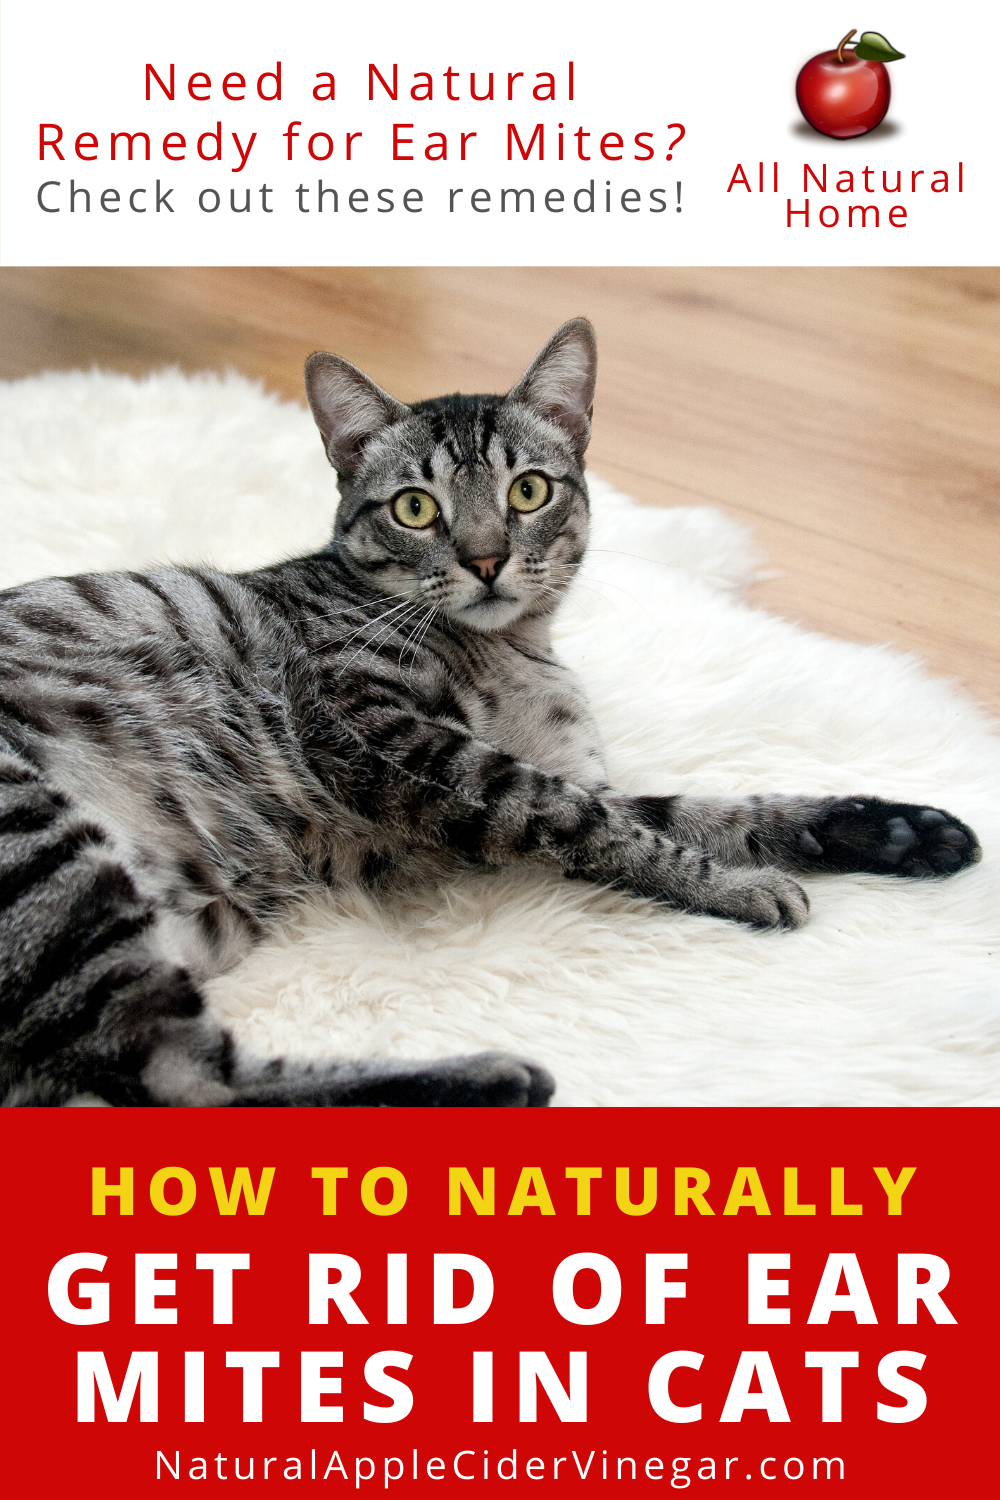 How To Get Rid Of Ear Mites In Cats Natural Home Remedy All Natural Home In 2020 Cat Ear Mites Cat Remedies Natural Cat